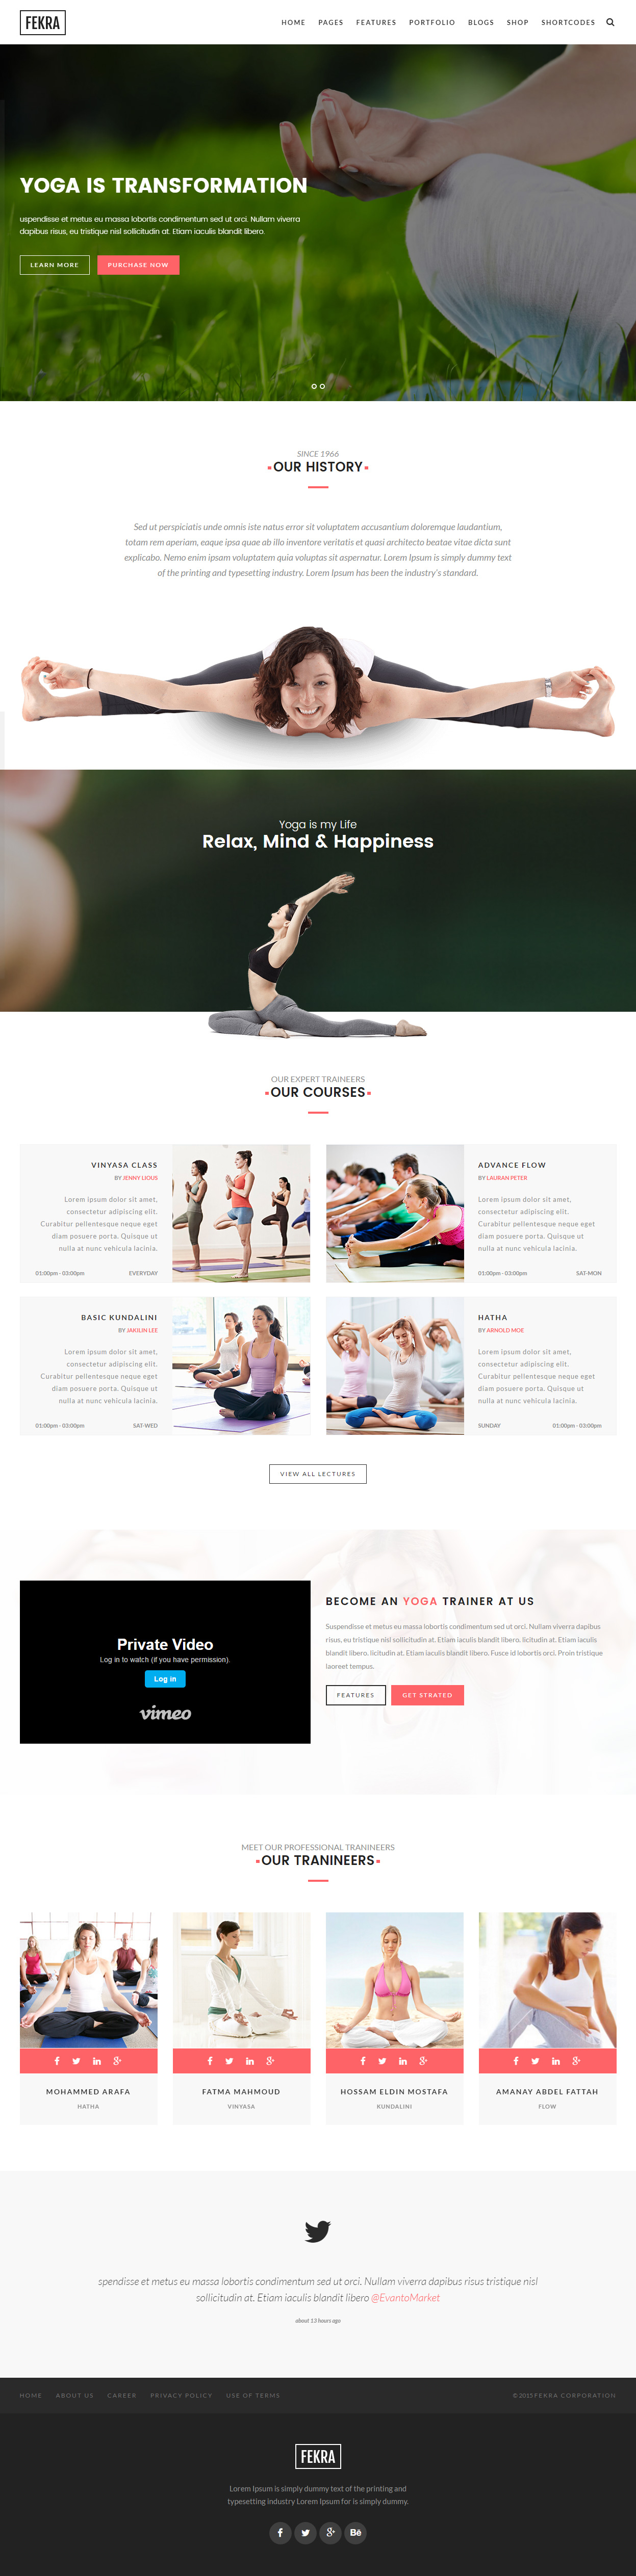 Best Responsive HTML5 Yoga Website Templates 2017 - Responsive Miracle